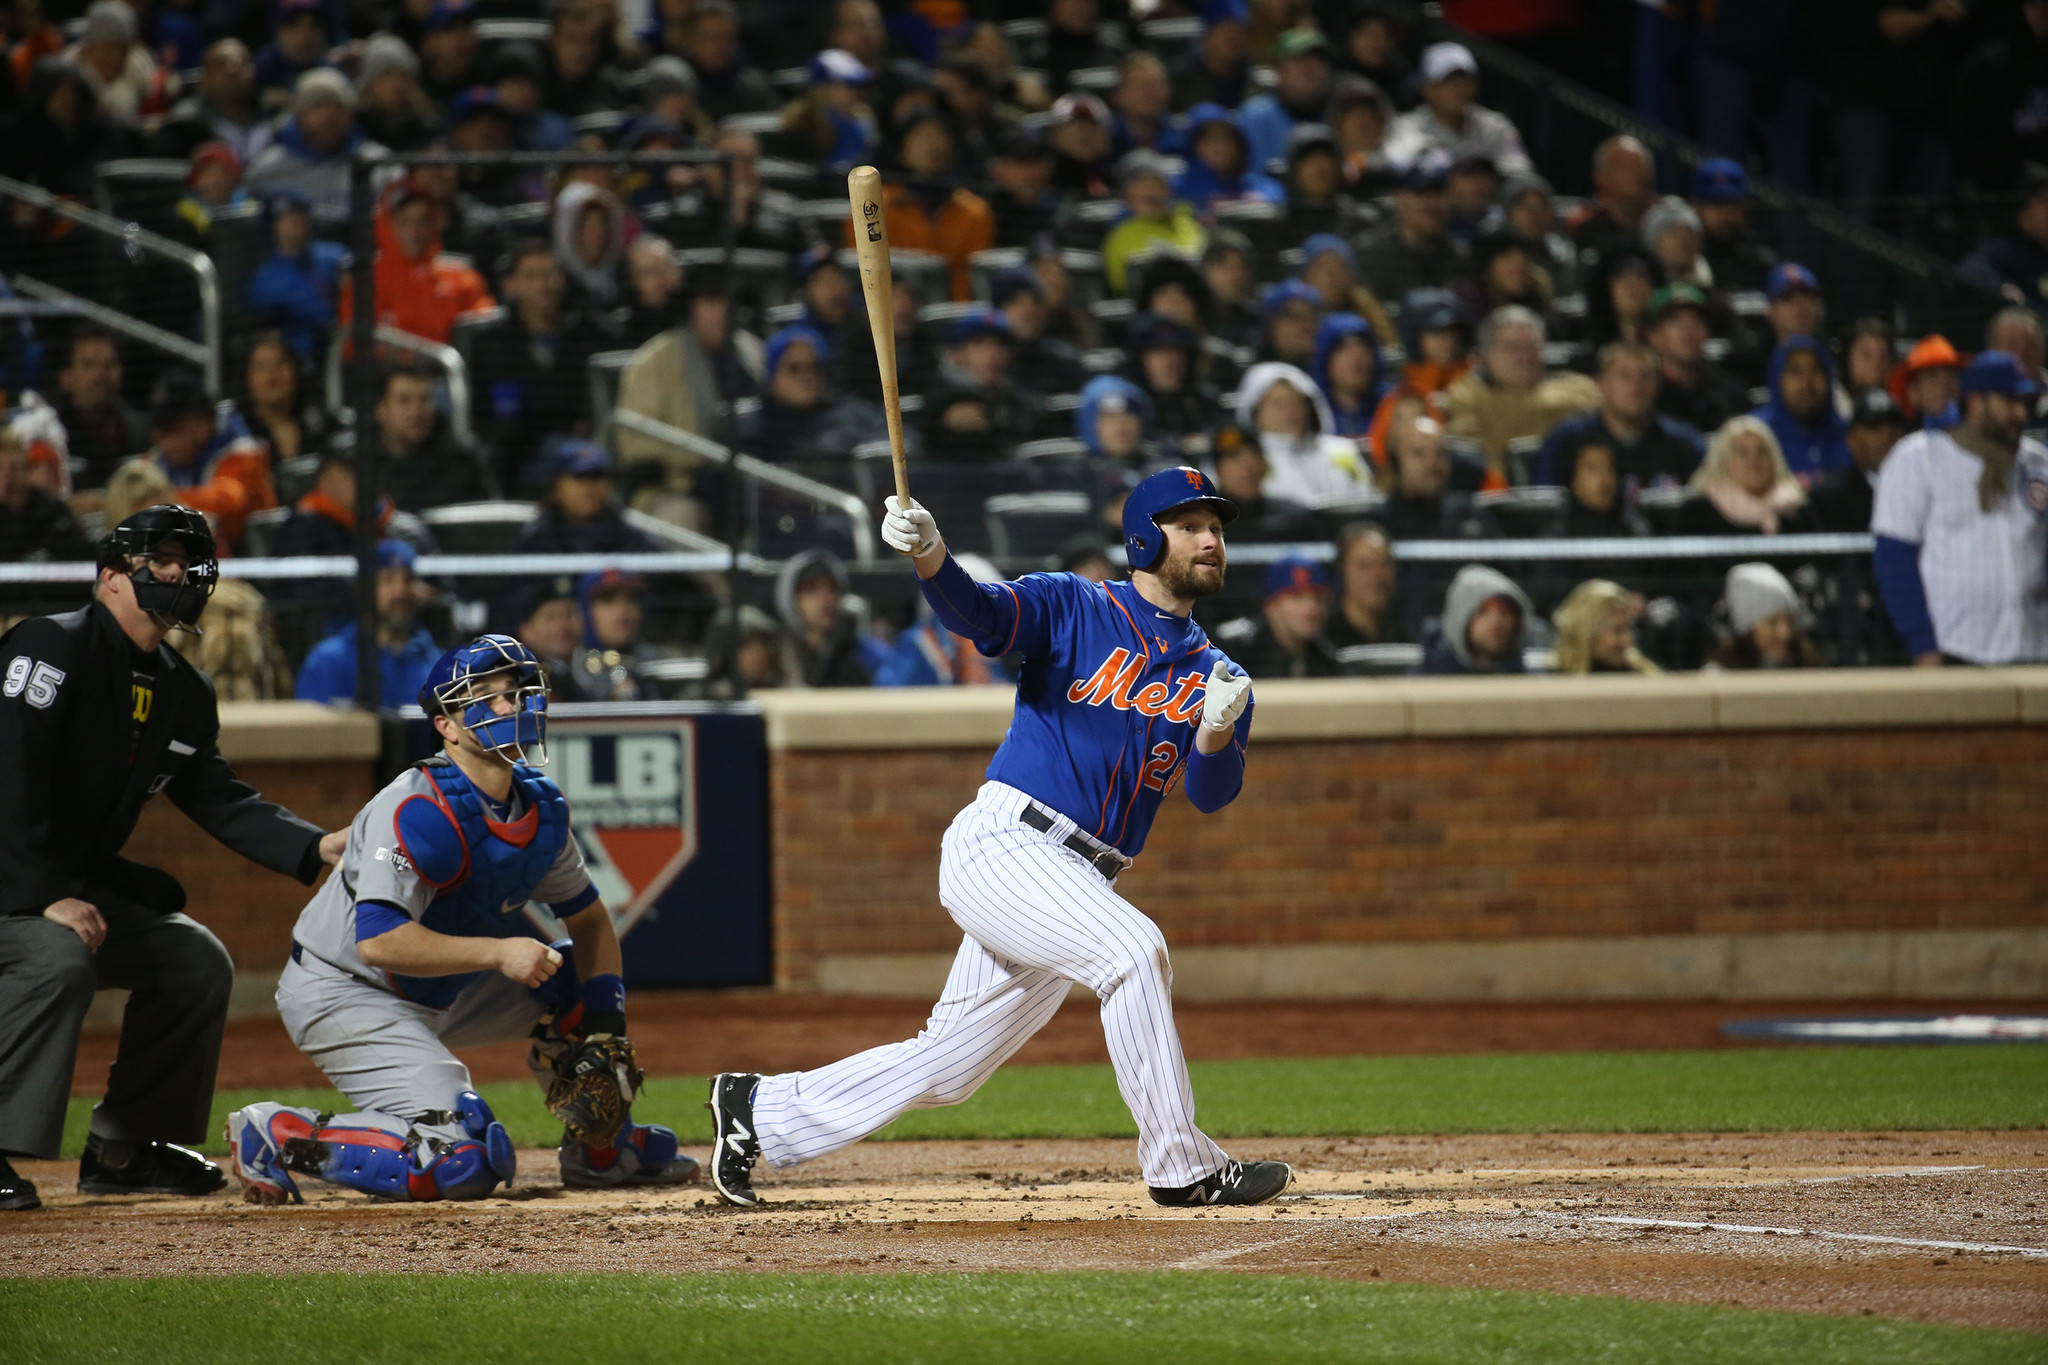 New York Mets defeat Chicago Cub 4-1 in Game 2 of National